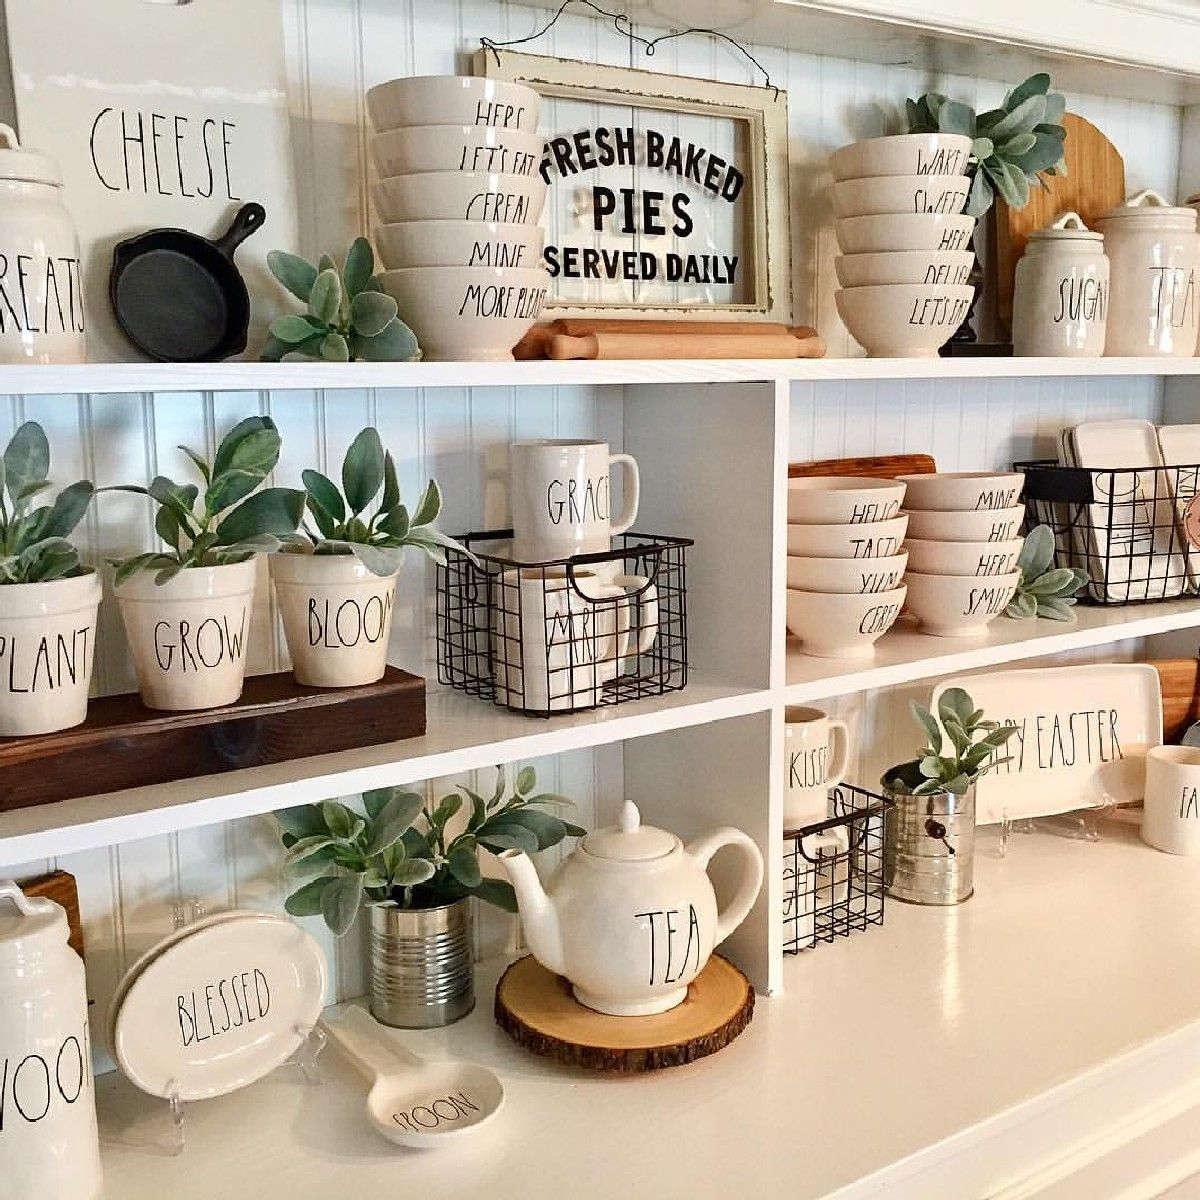 Amazing Diy Rae Dunn Display Ideas And Pictures 53 Kitchen Decor